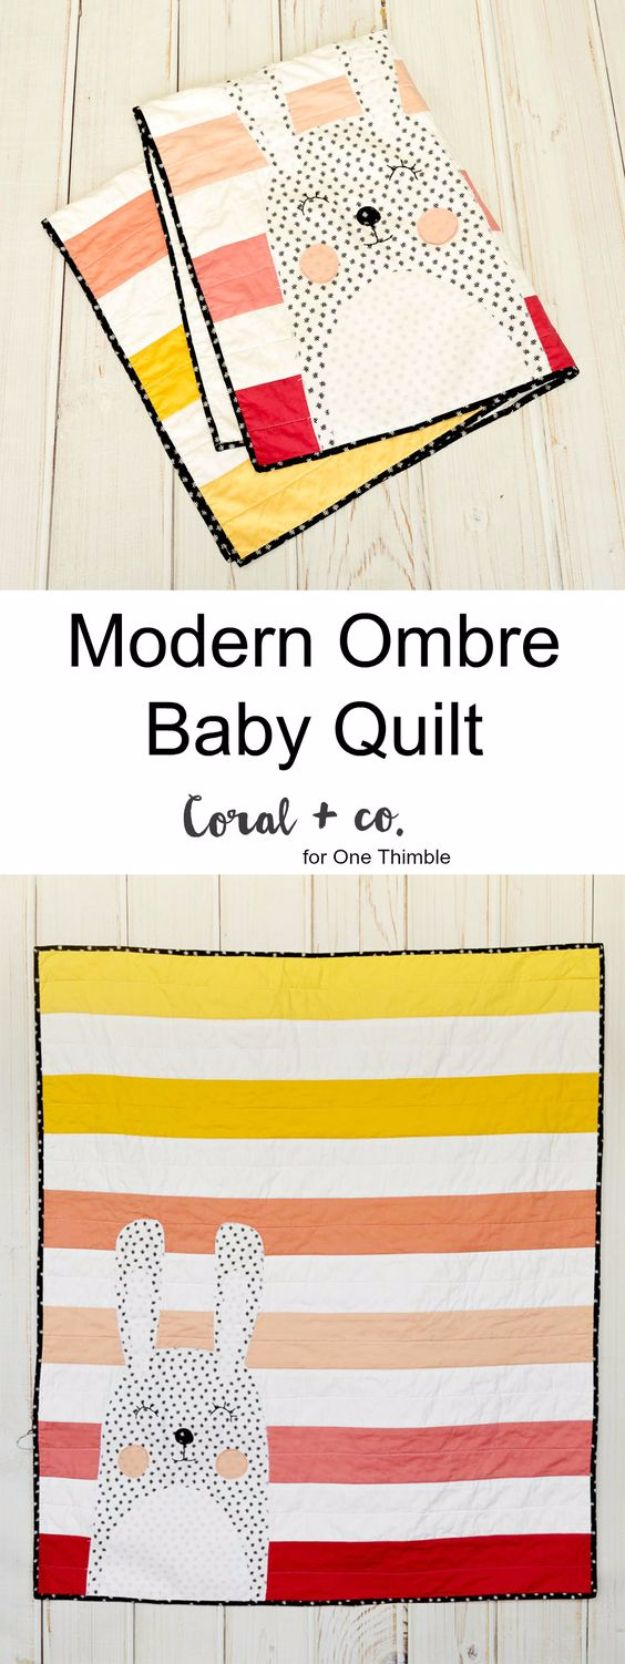 51 Super Creative Things to Sew for Baby | Sew Cute! | Pinterest